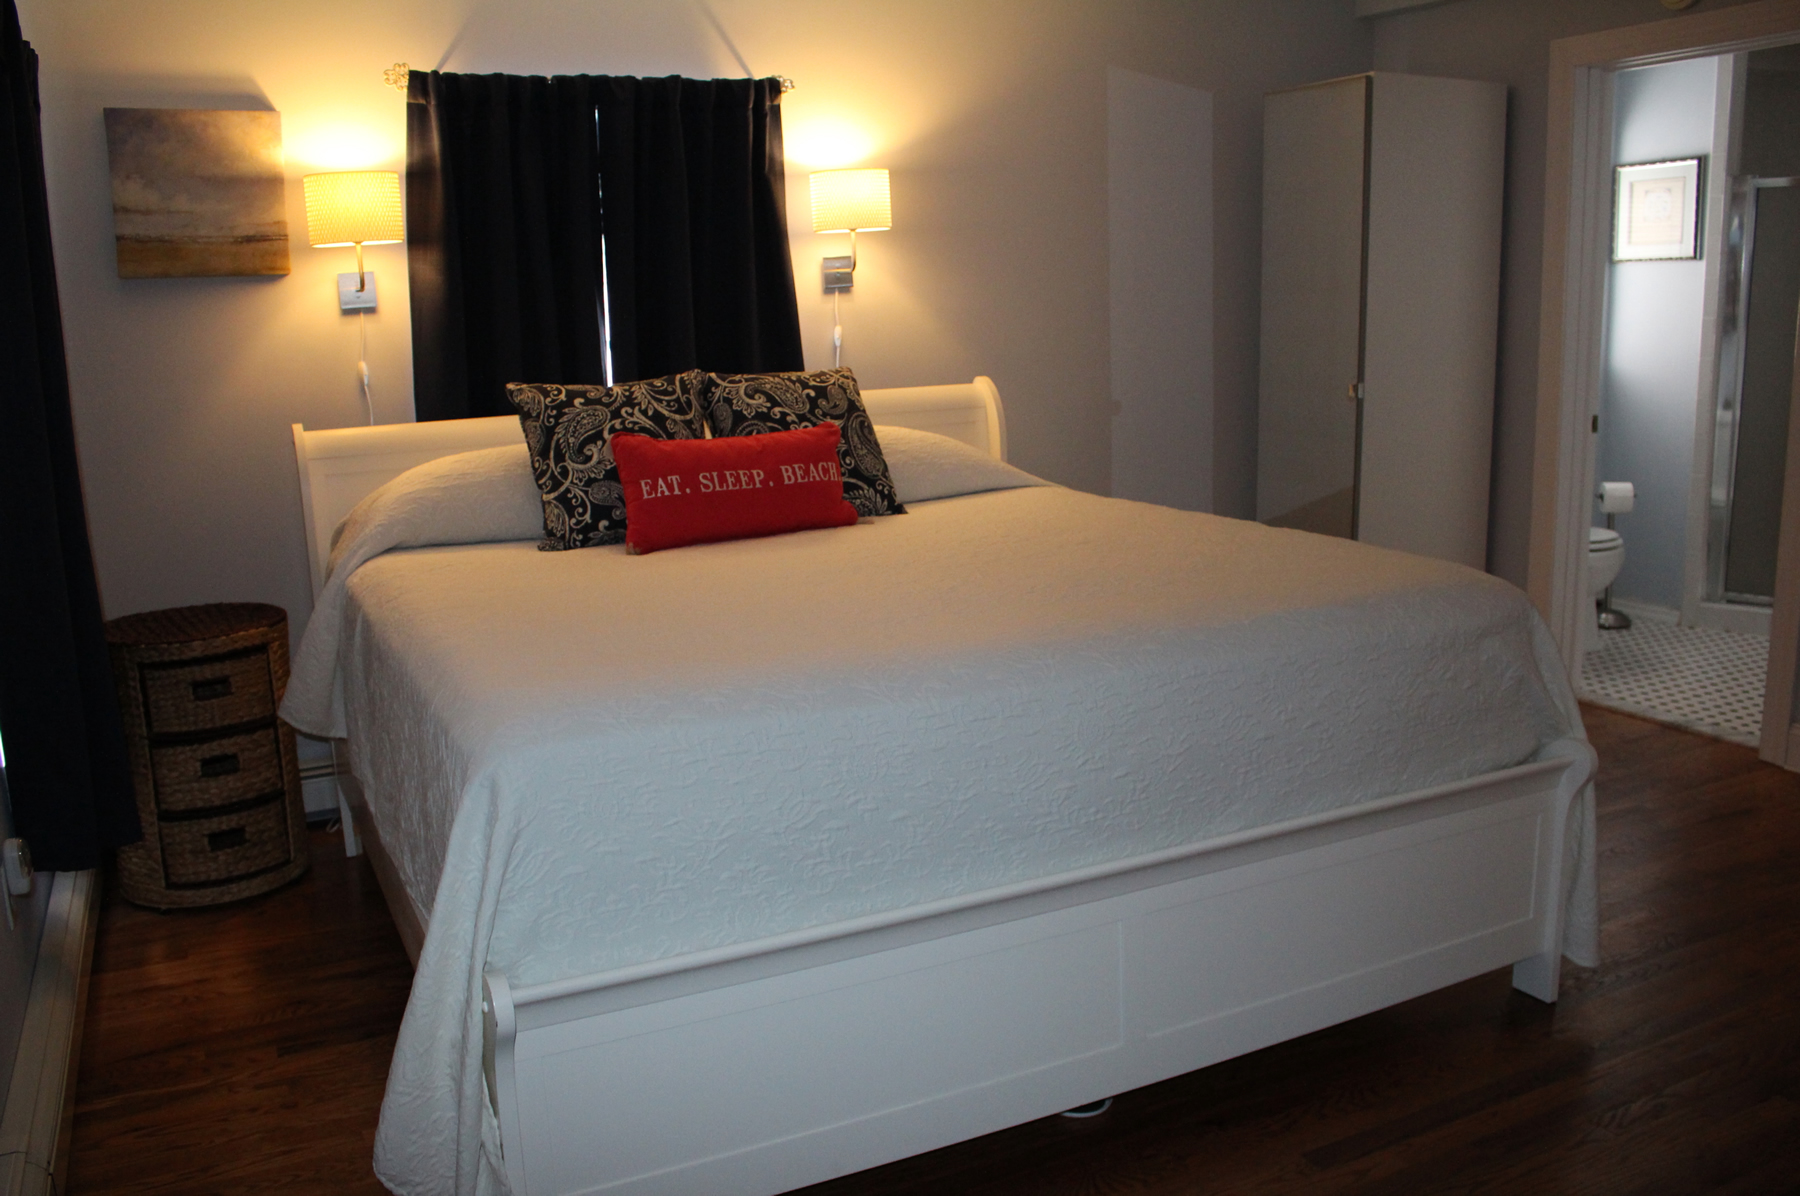 RM-1-Bed-13-A_sm